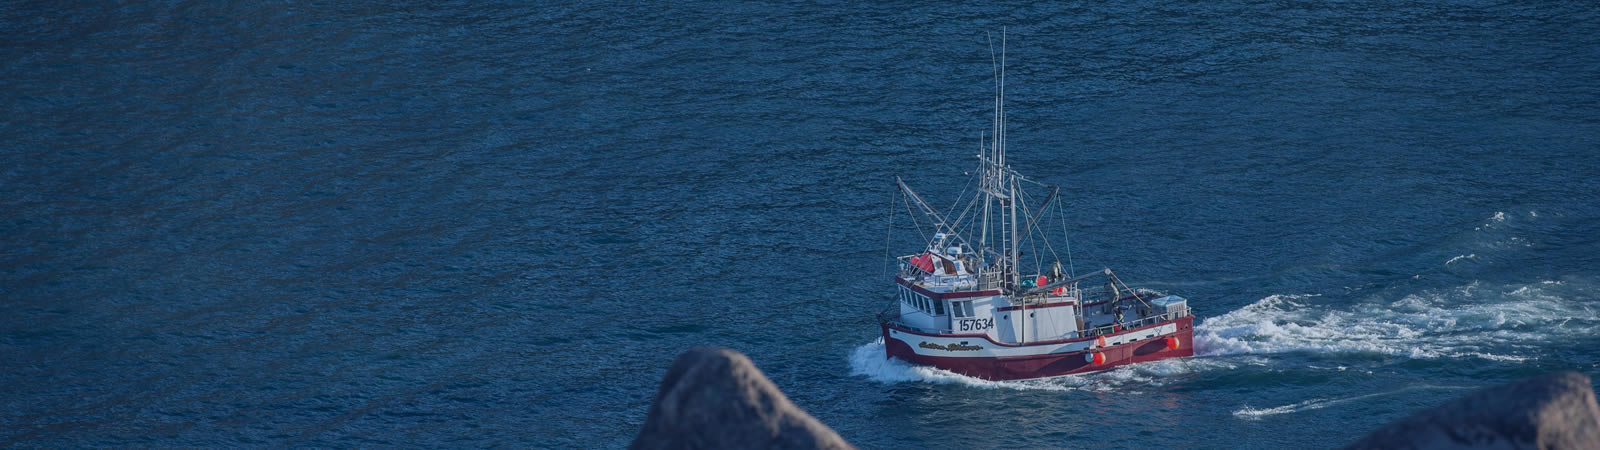 Fisheries Consultants - Fisheries governance fishery consultants